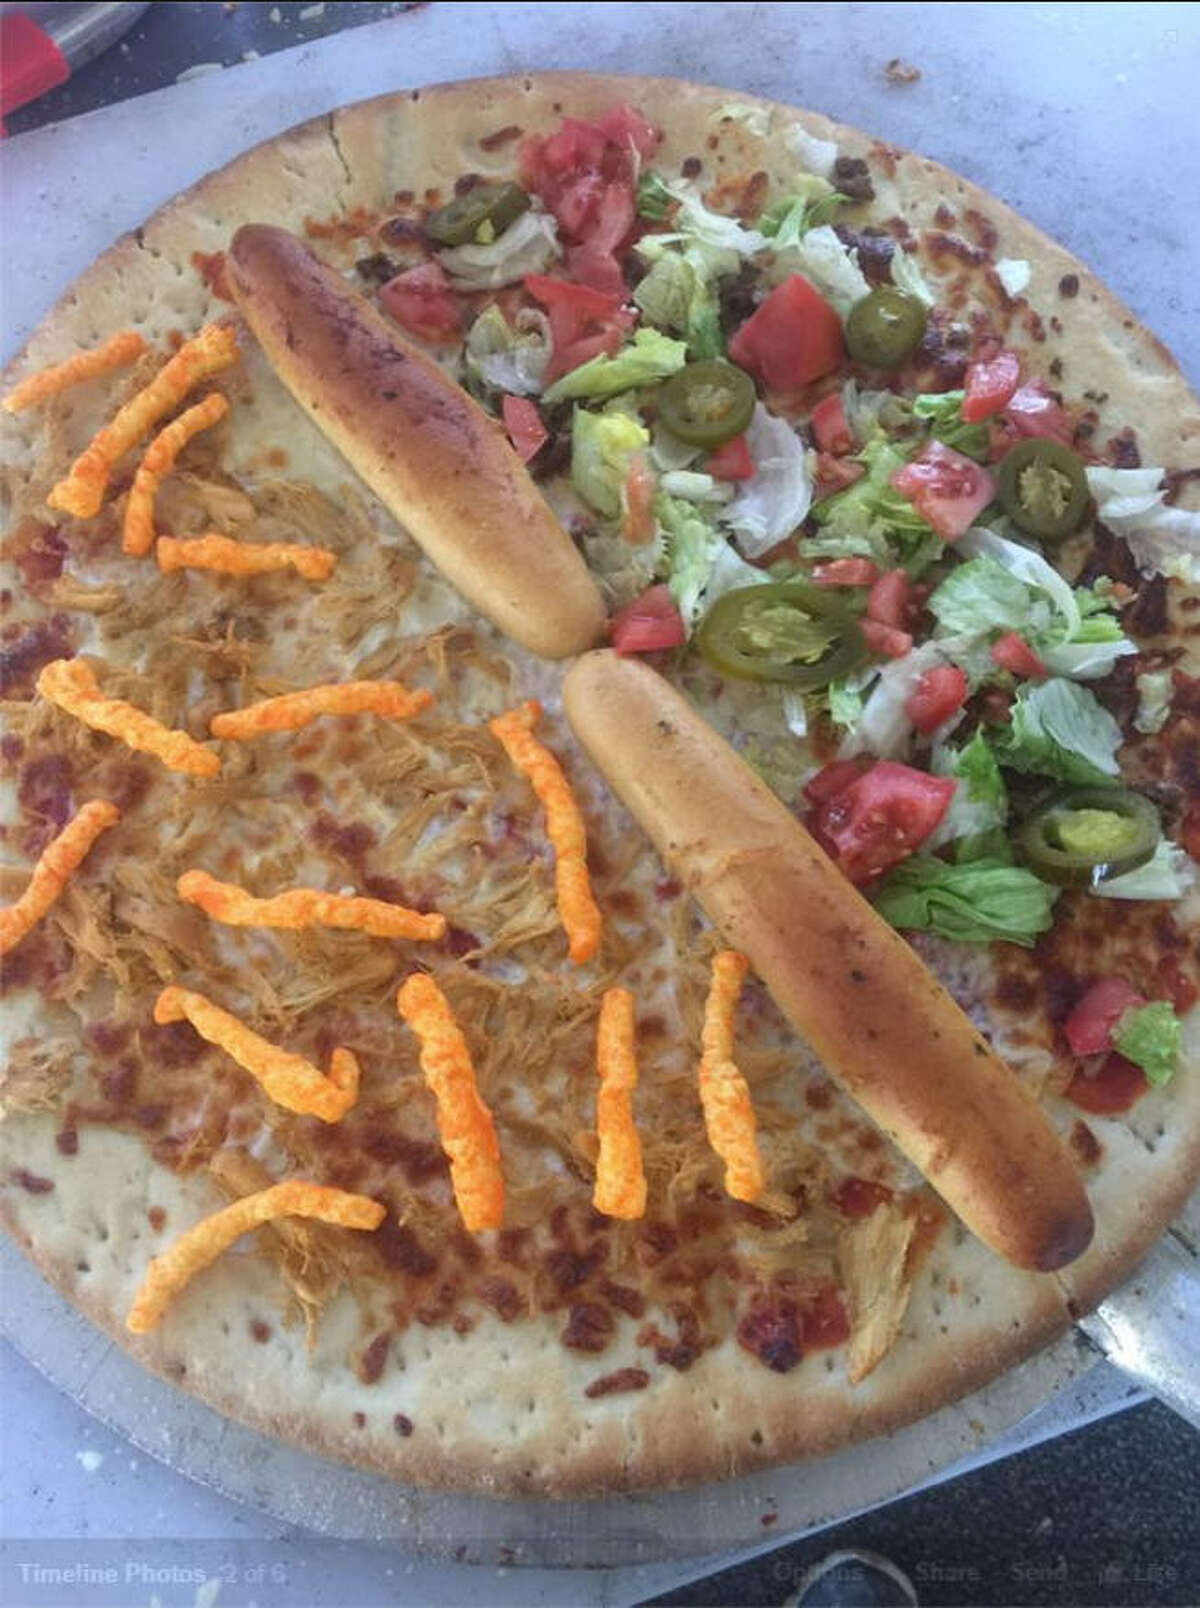 Bread border The Donald Trump-inspired pizza a Peace of Pizza in Midland, Texas, features an all-white bread stick border dividing the Mexican taco pizza side from a white pizza garnished with Cheetos. The restaurant says the Cheetos were inspired by Trump's skin tone.